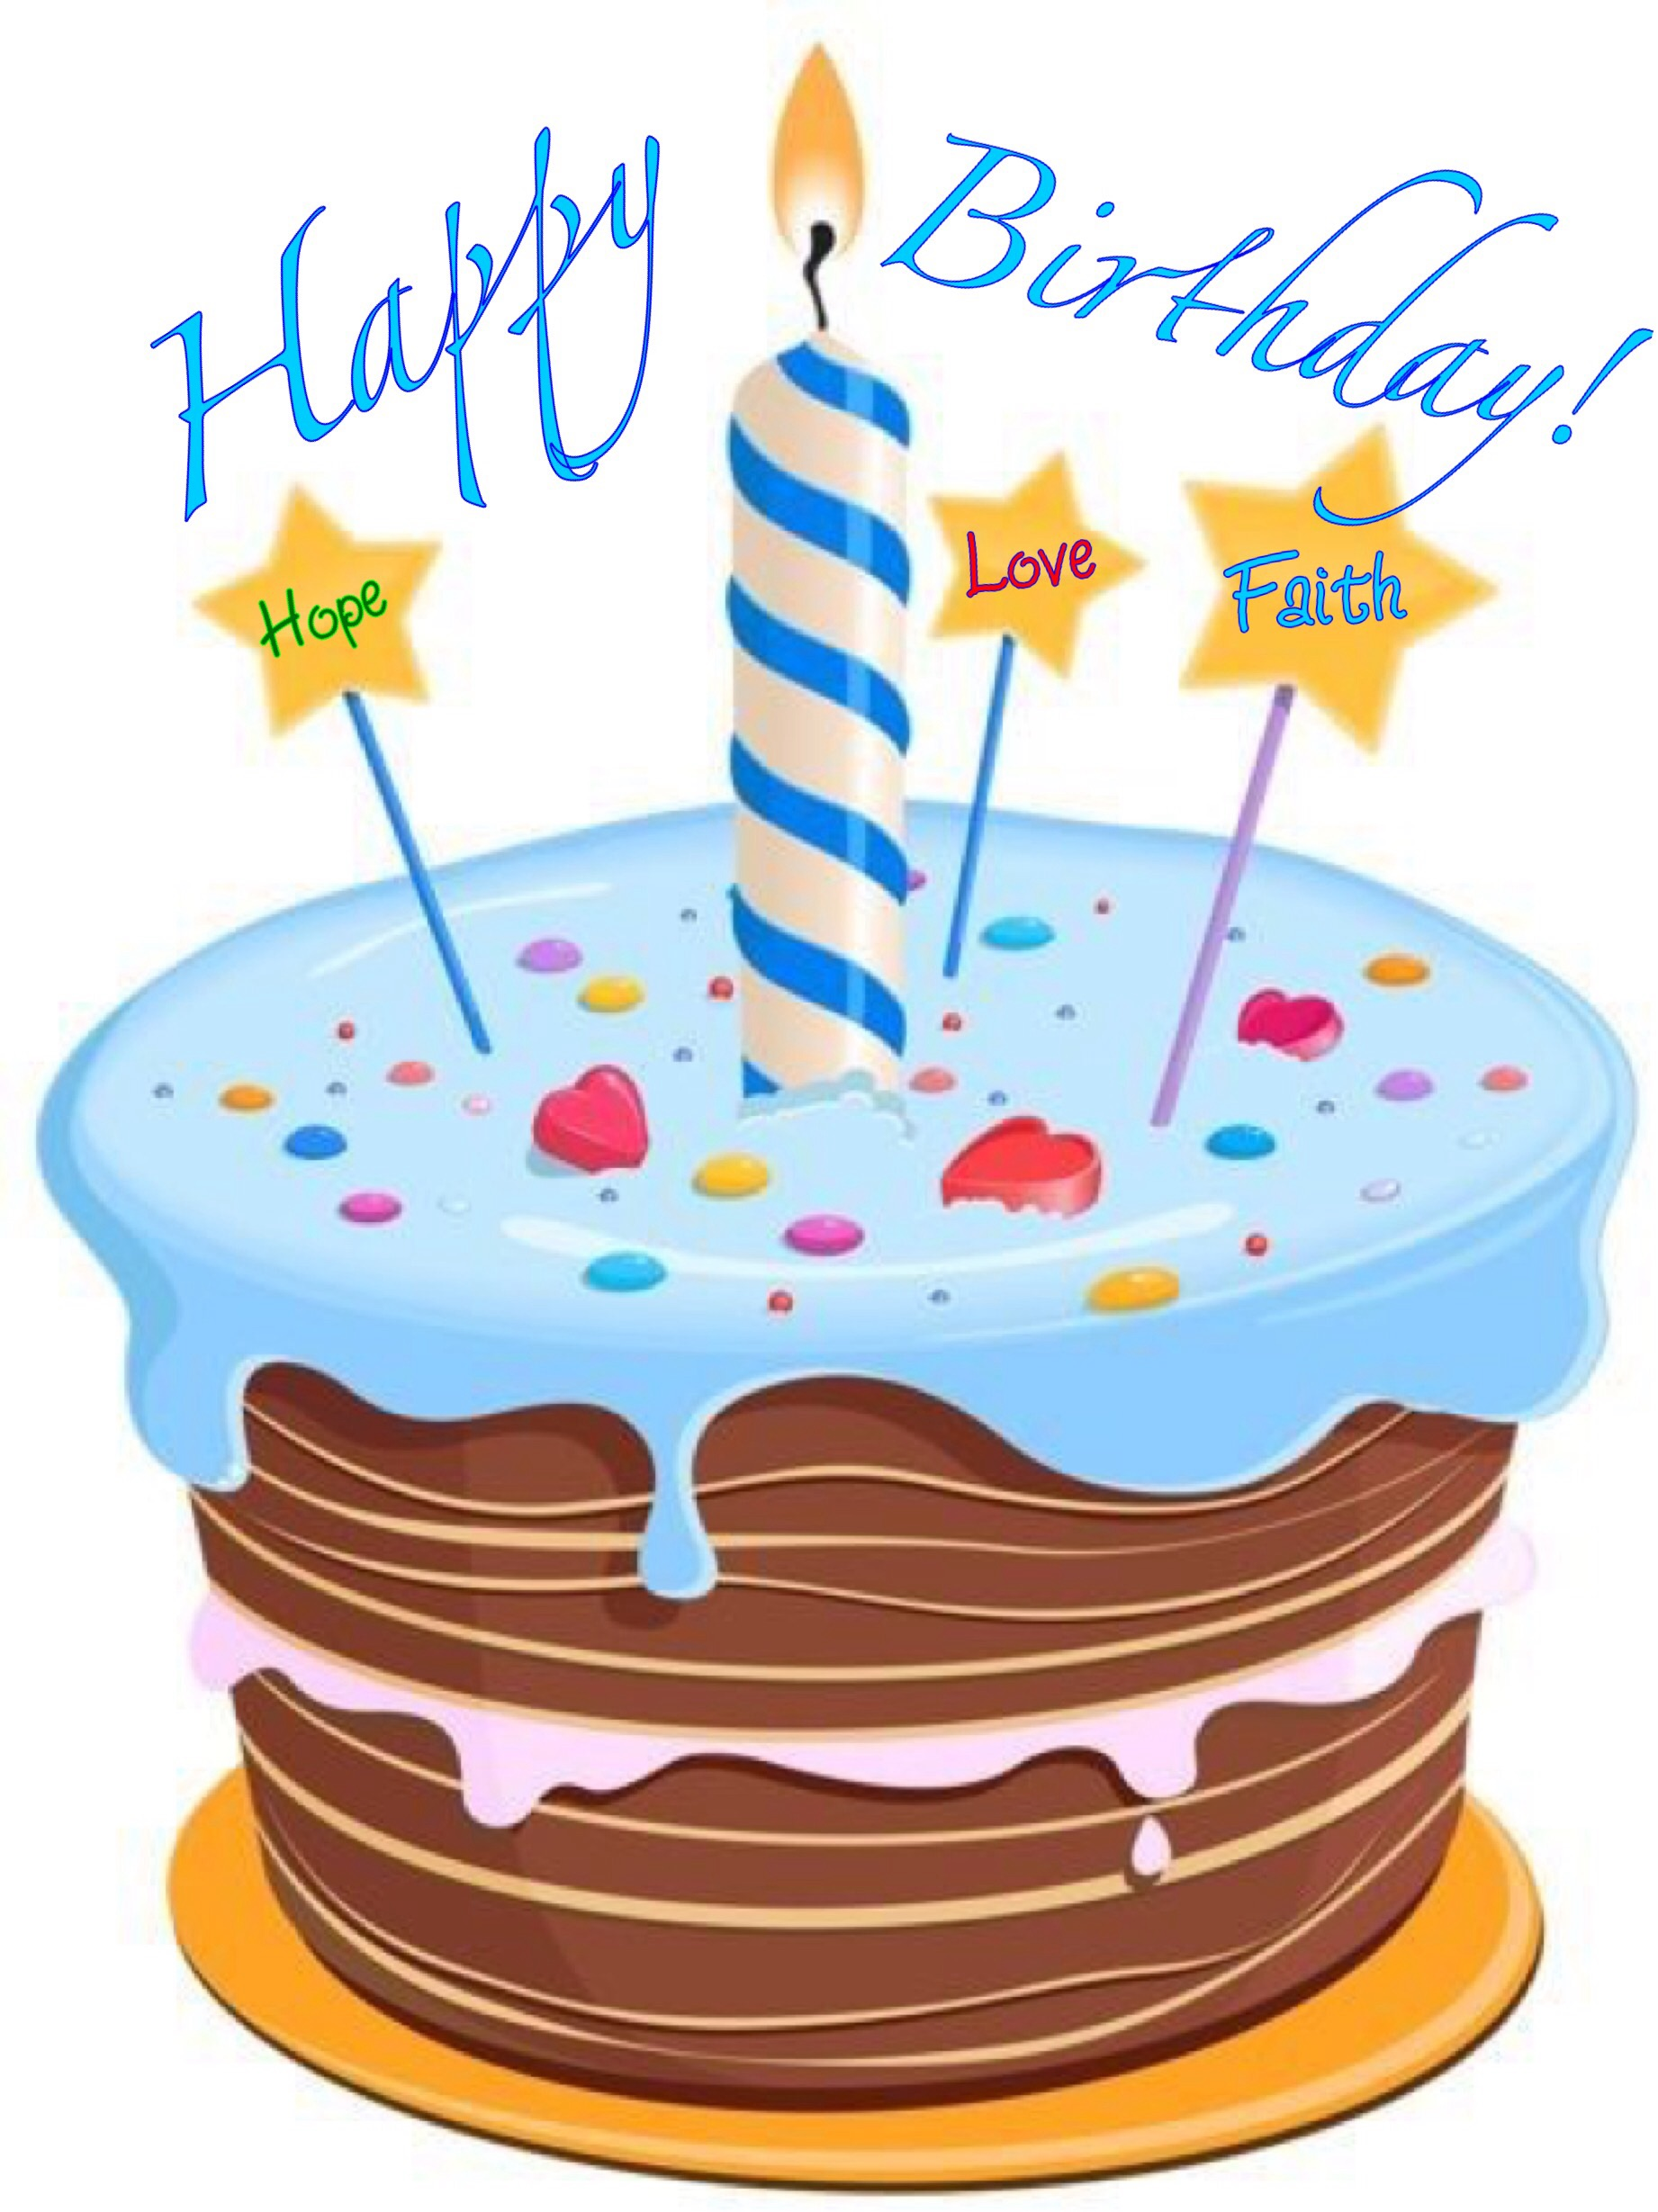 clipart for birthday wishes ; 34880a04cccffdab67b4f9e105cb7722